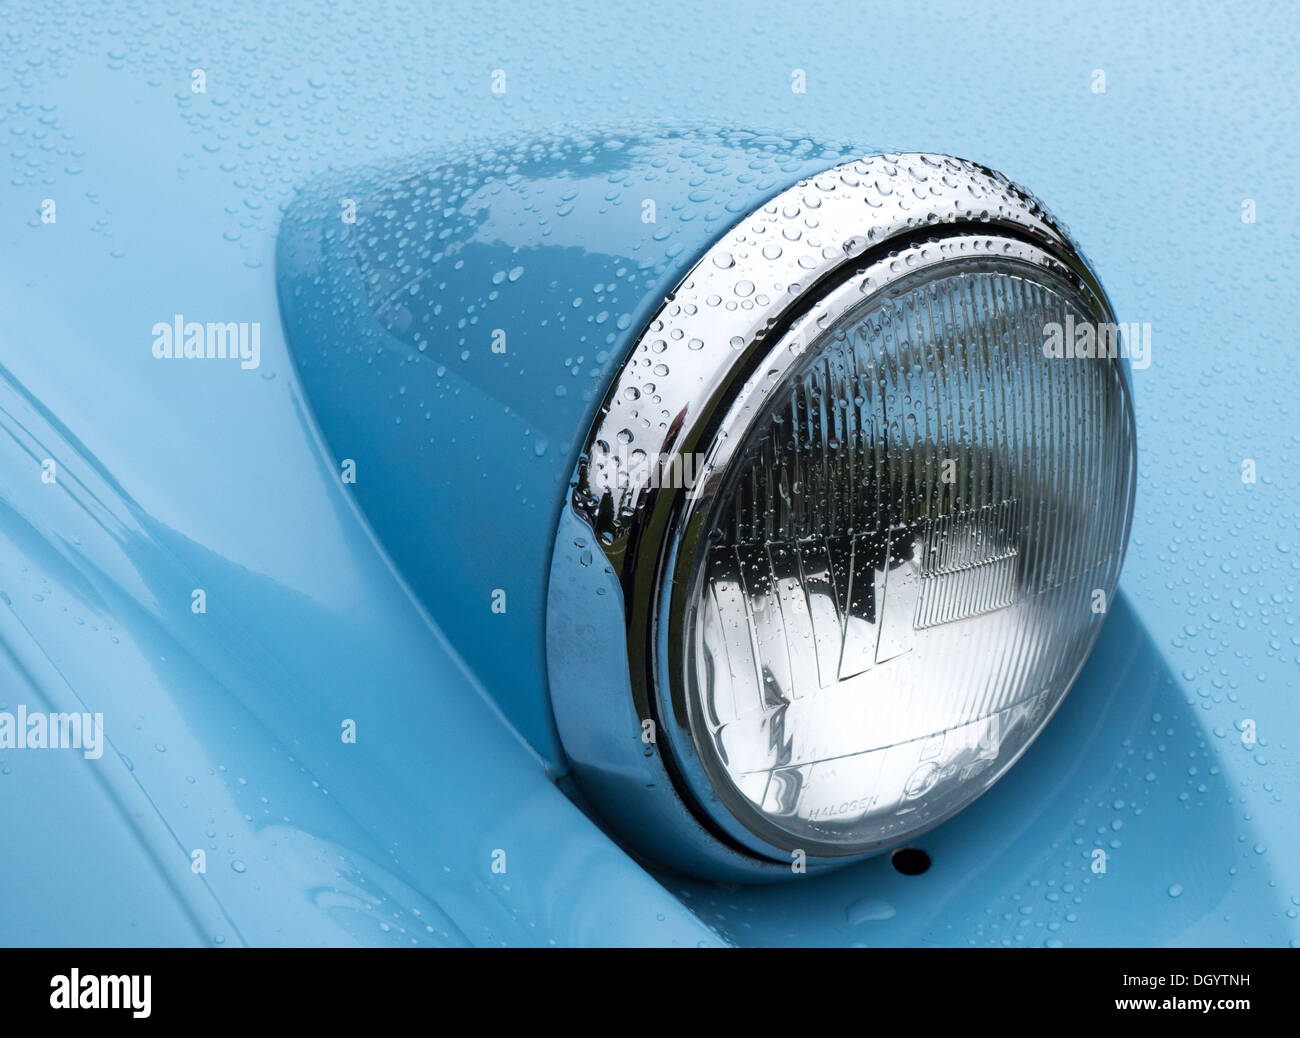 Austin Healey Frogeye Sprite headlight - Stock Image